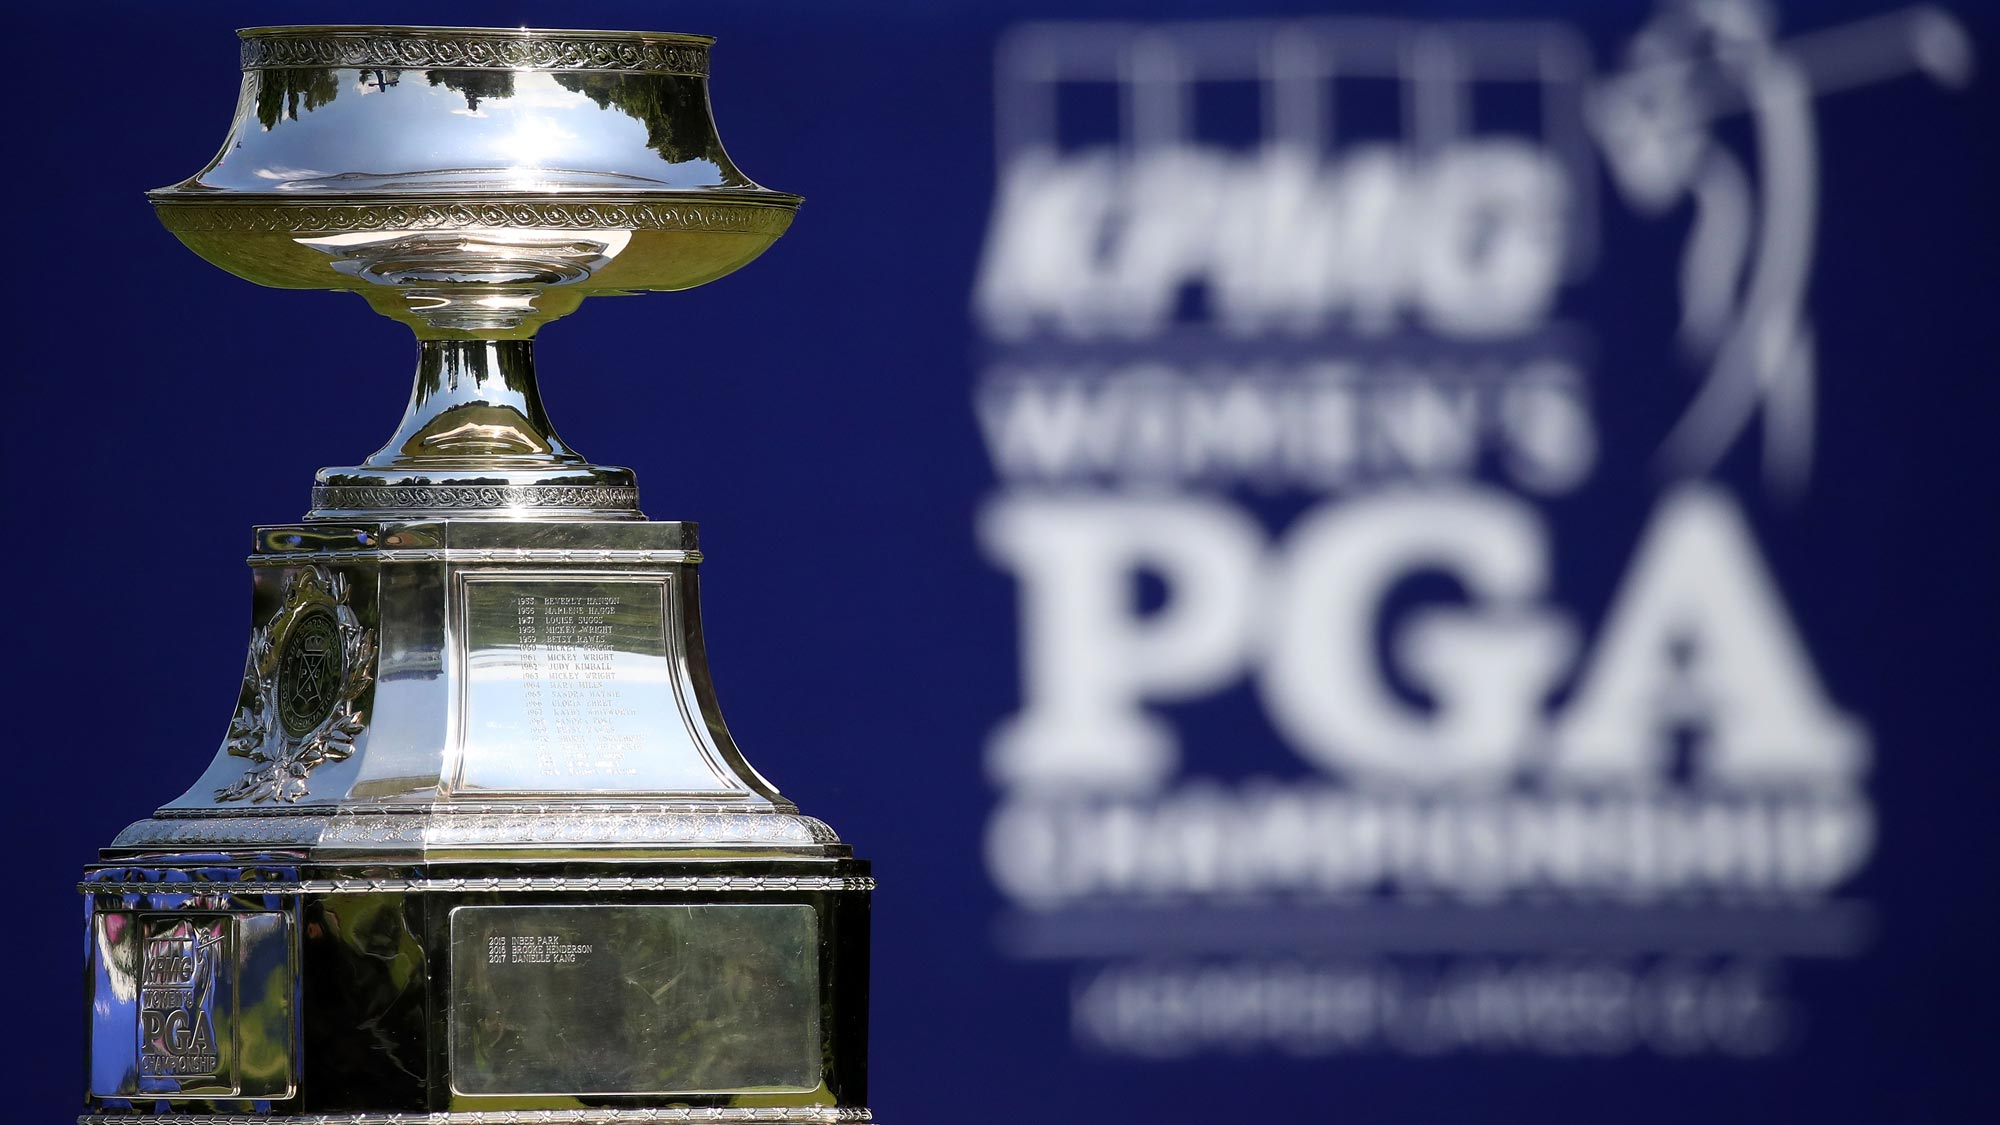 A detailed view of the Championship trophy on the first tee during the final round of the KPMG Women's PGA Championship